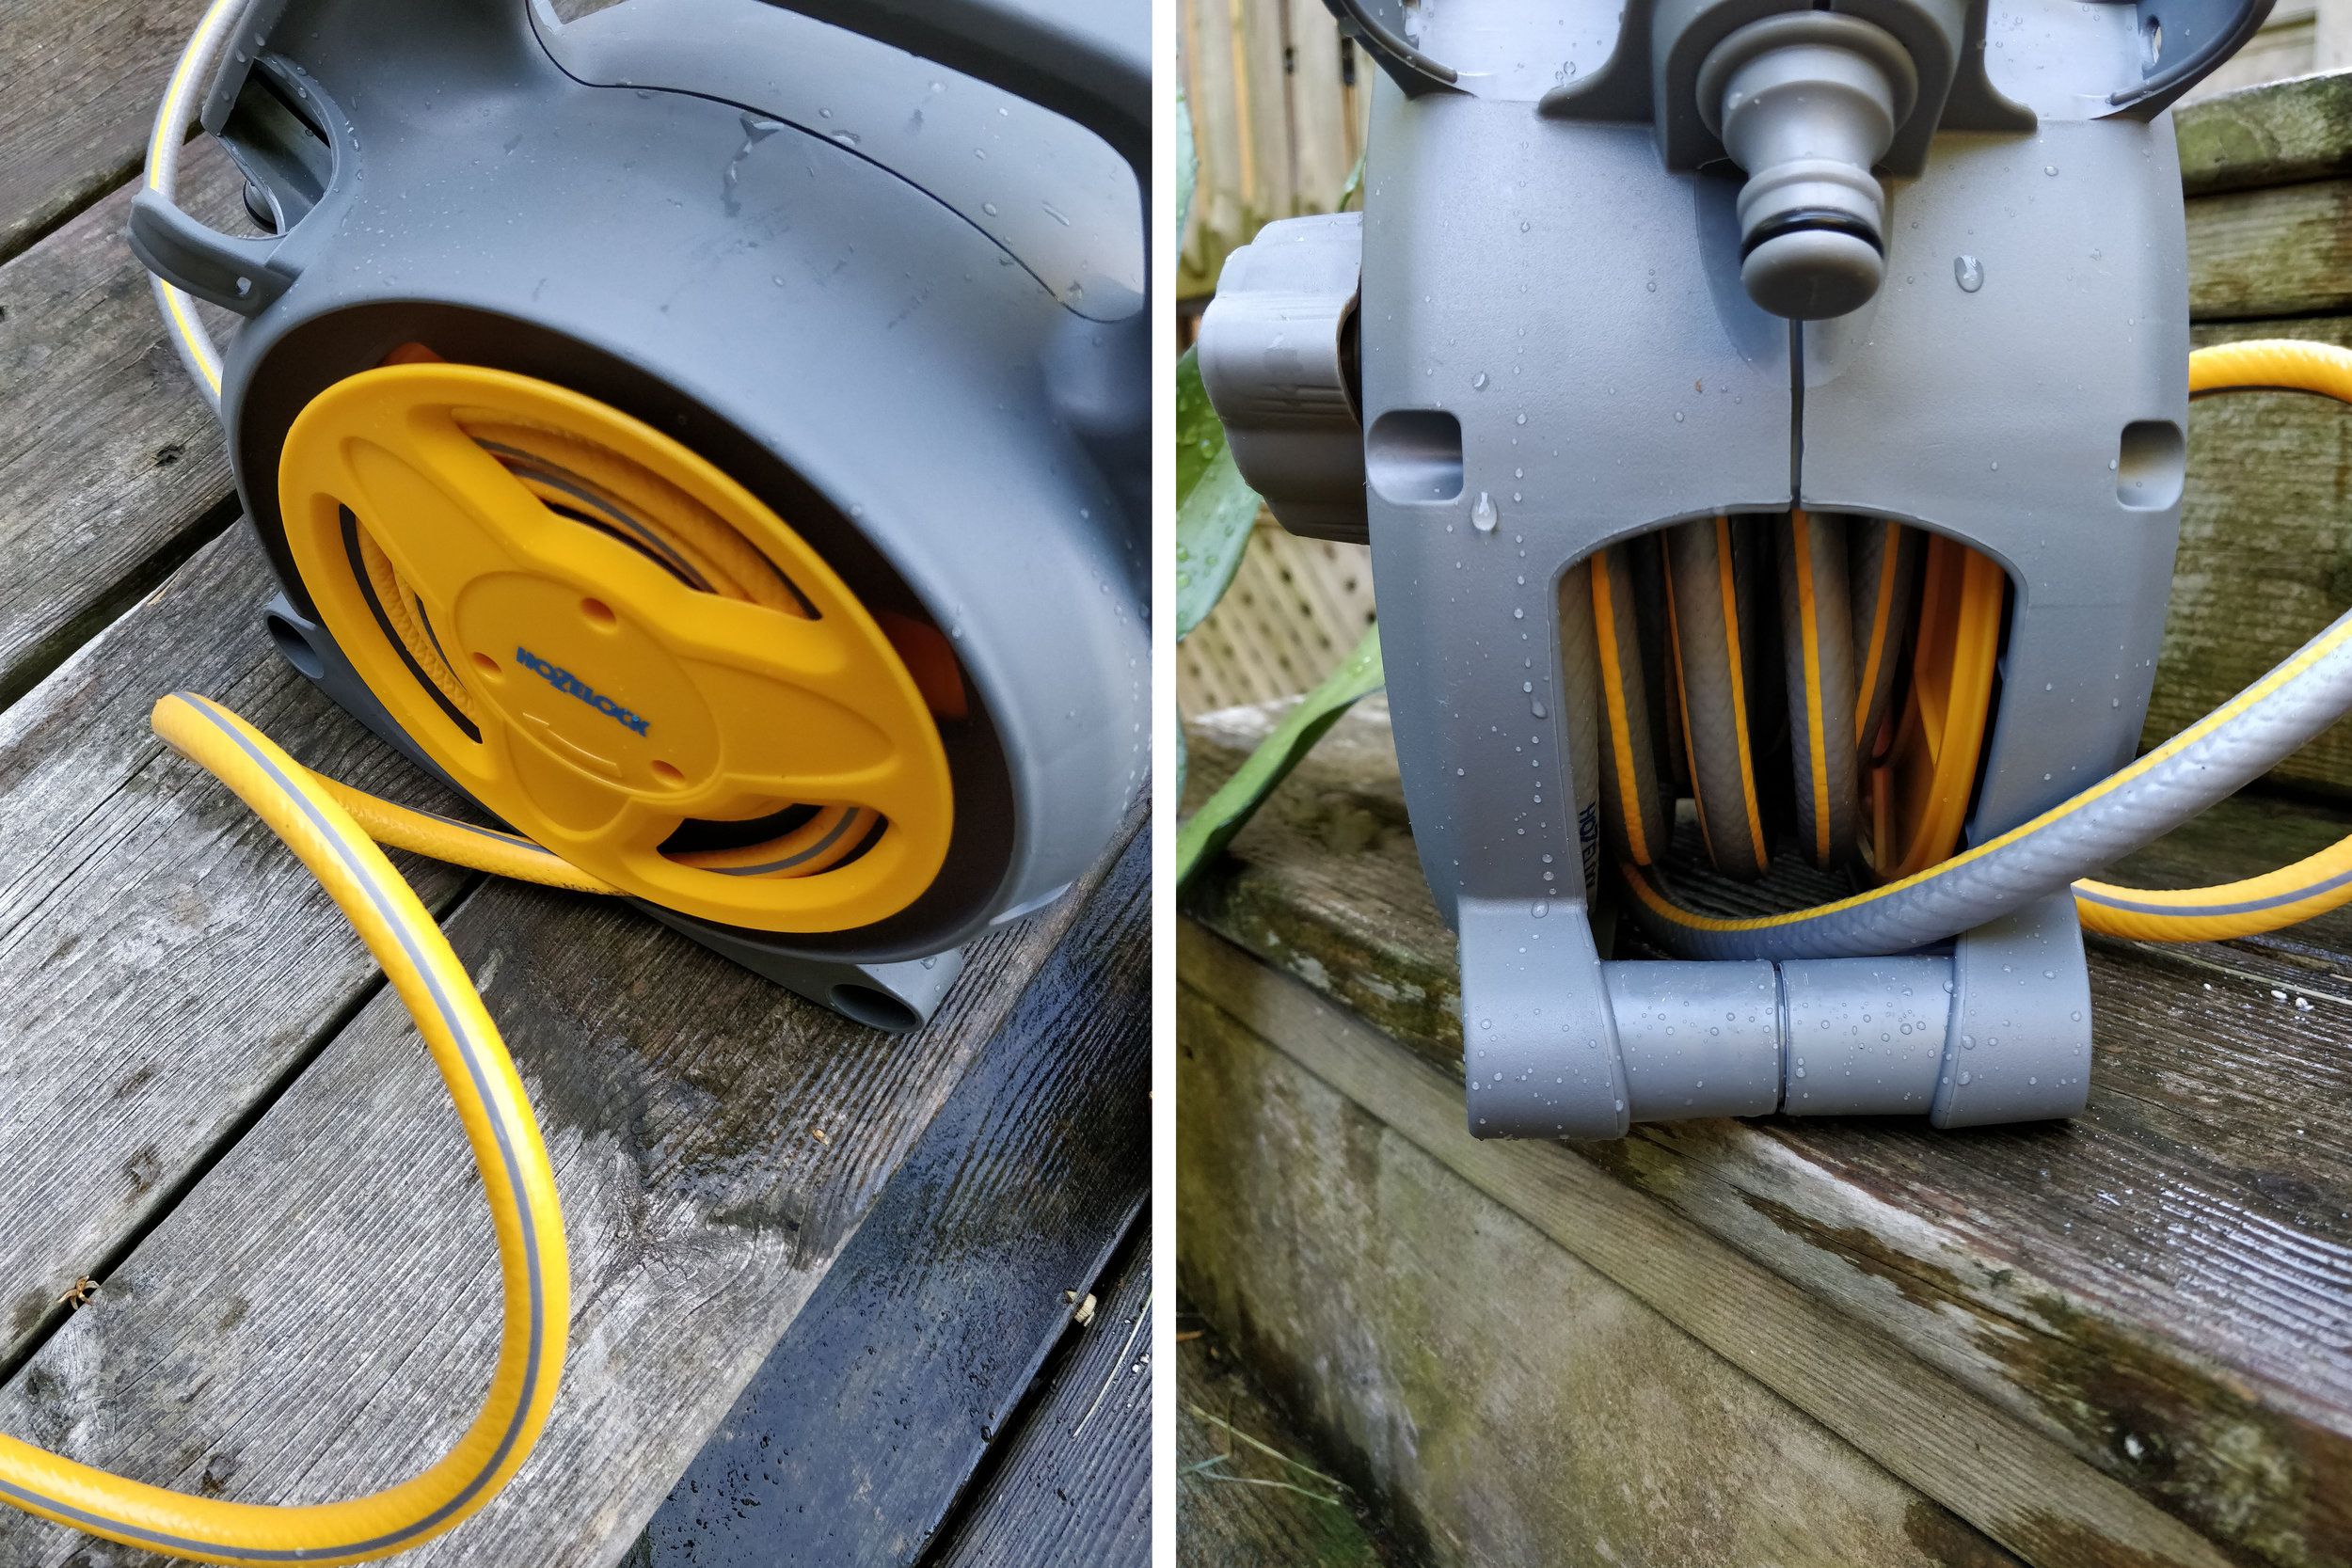 The yellow hose is 6-1/2' long and coils around a spool while the longer grey hose (26' long) wraps on the reel on the opposite side.  This gives you flexibility in using the hose: carry the reel with you or leave it as you walk to your plants.